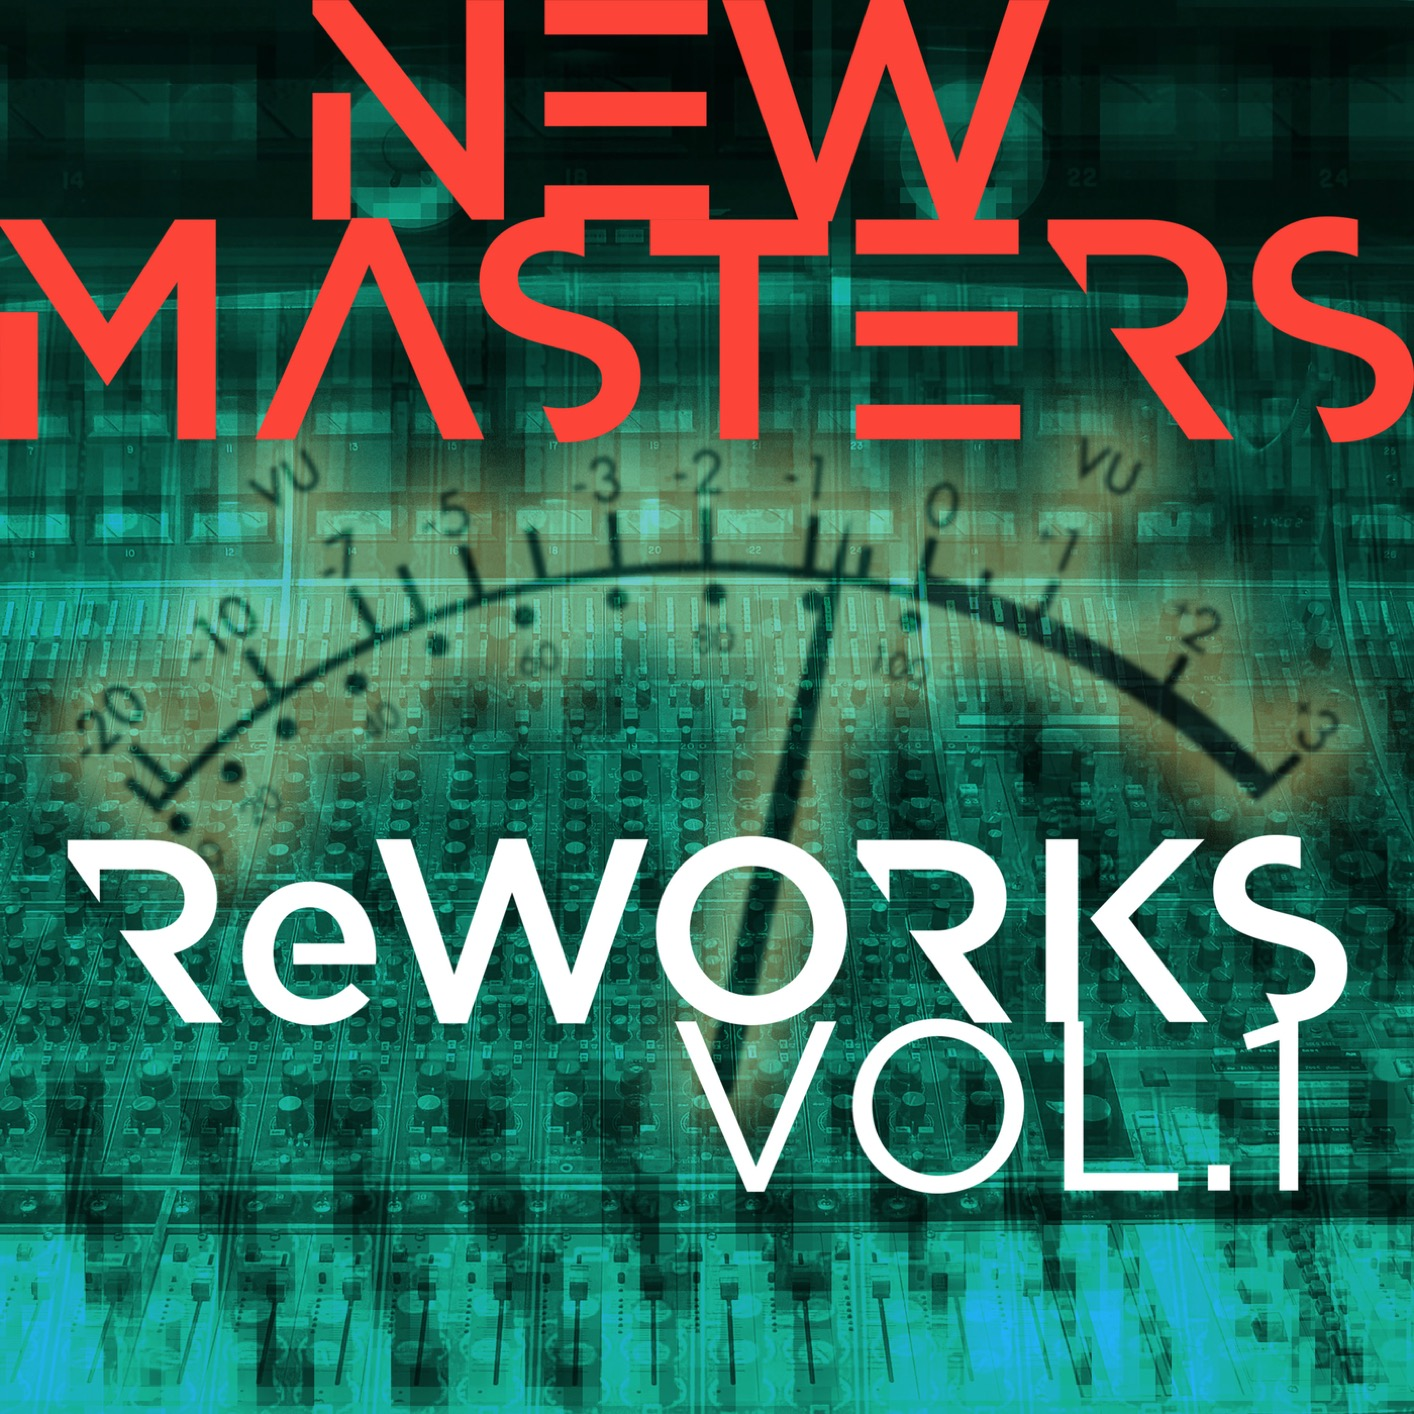 [TR24][OF] New Masters - ReWORKS Vol. 1 - 2019 (Jazz)